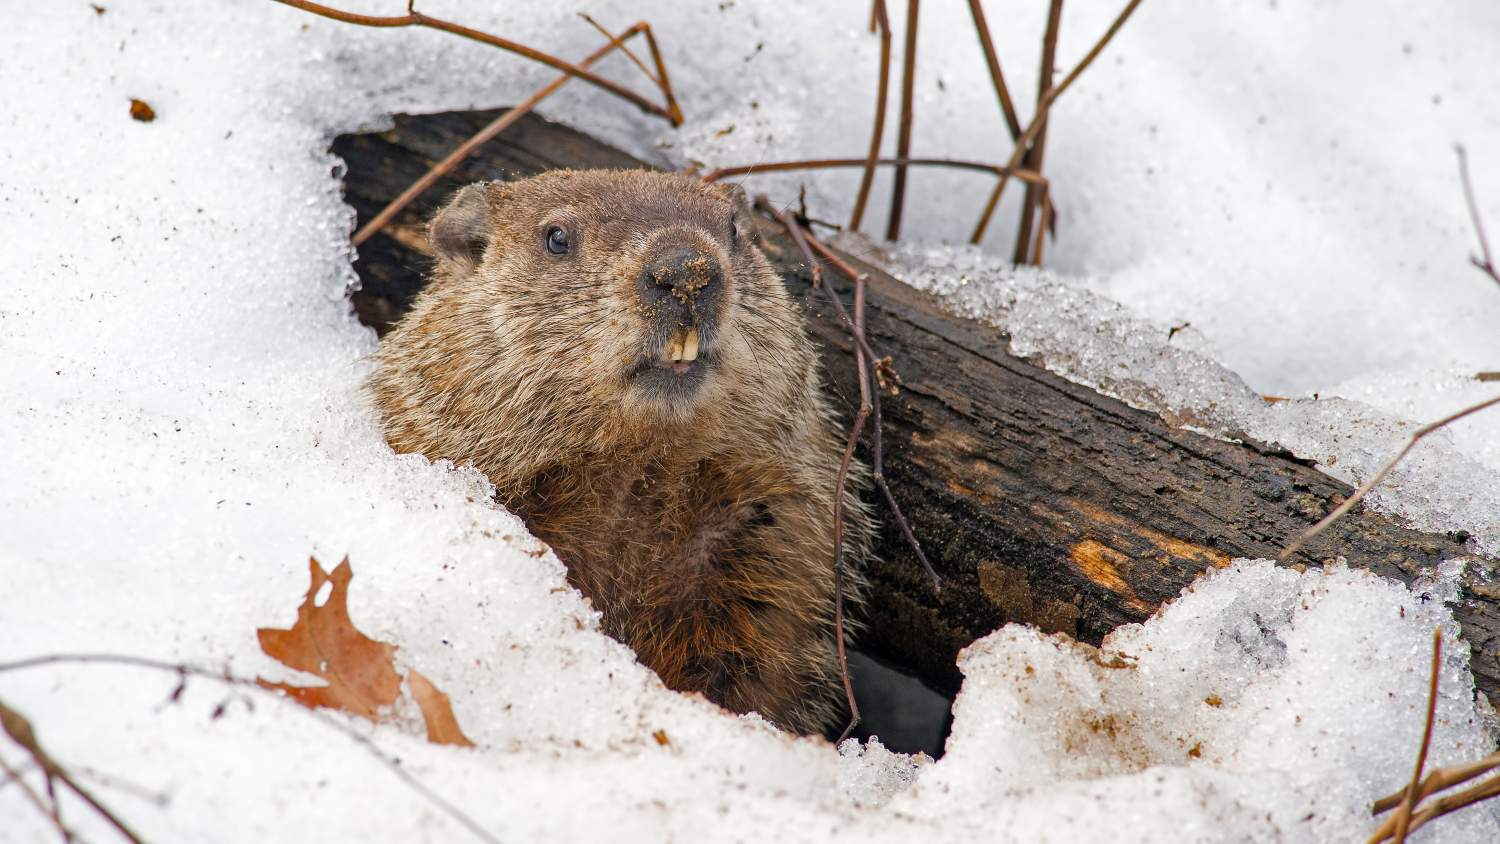 Groundhog peeking out of its den